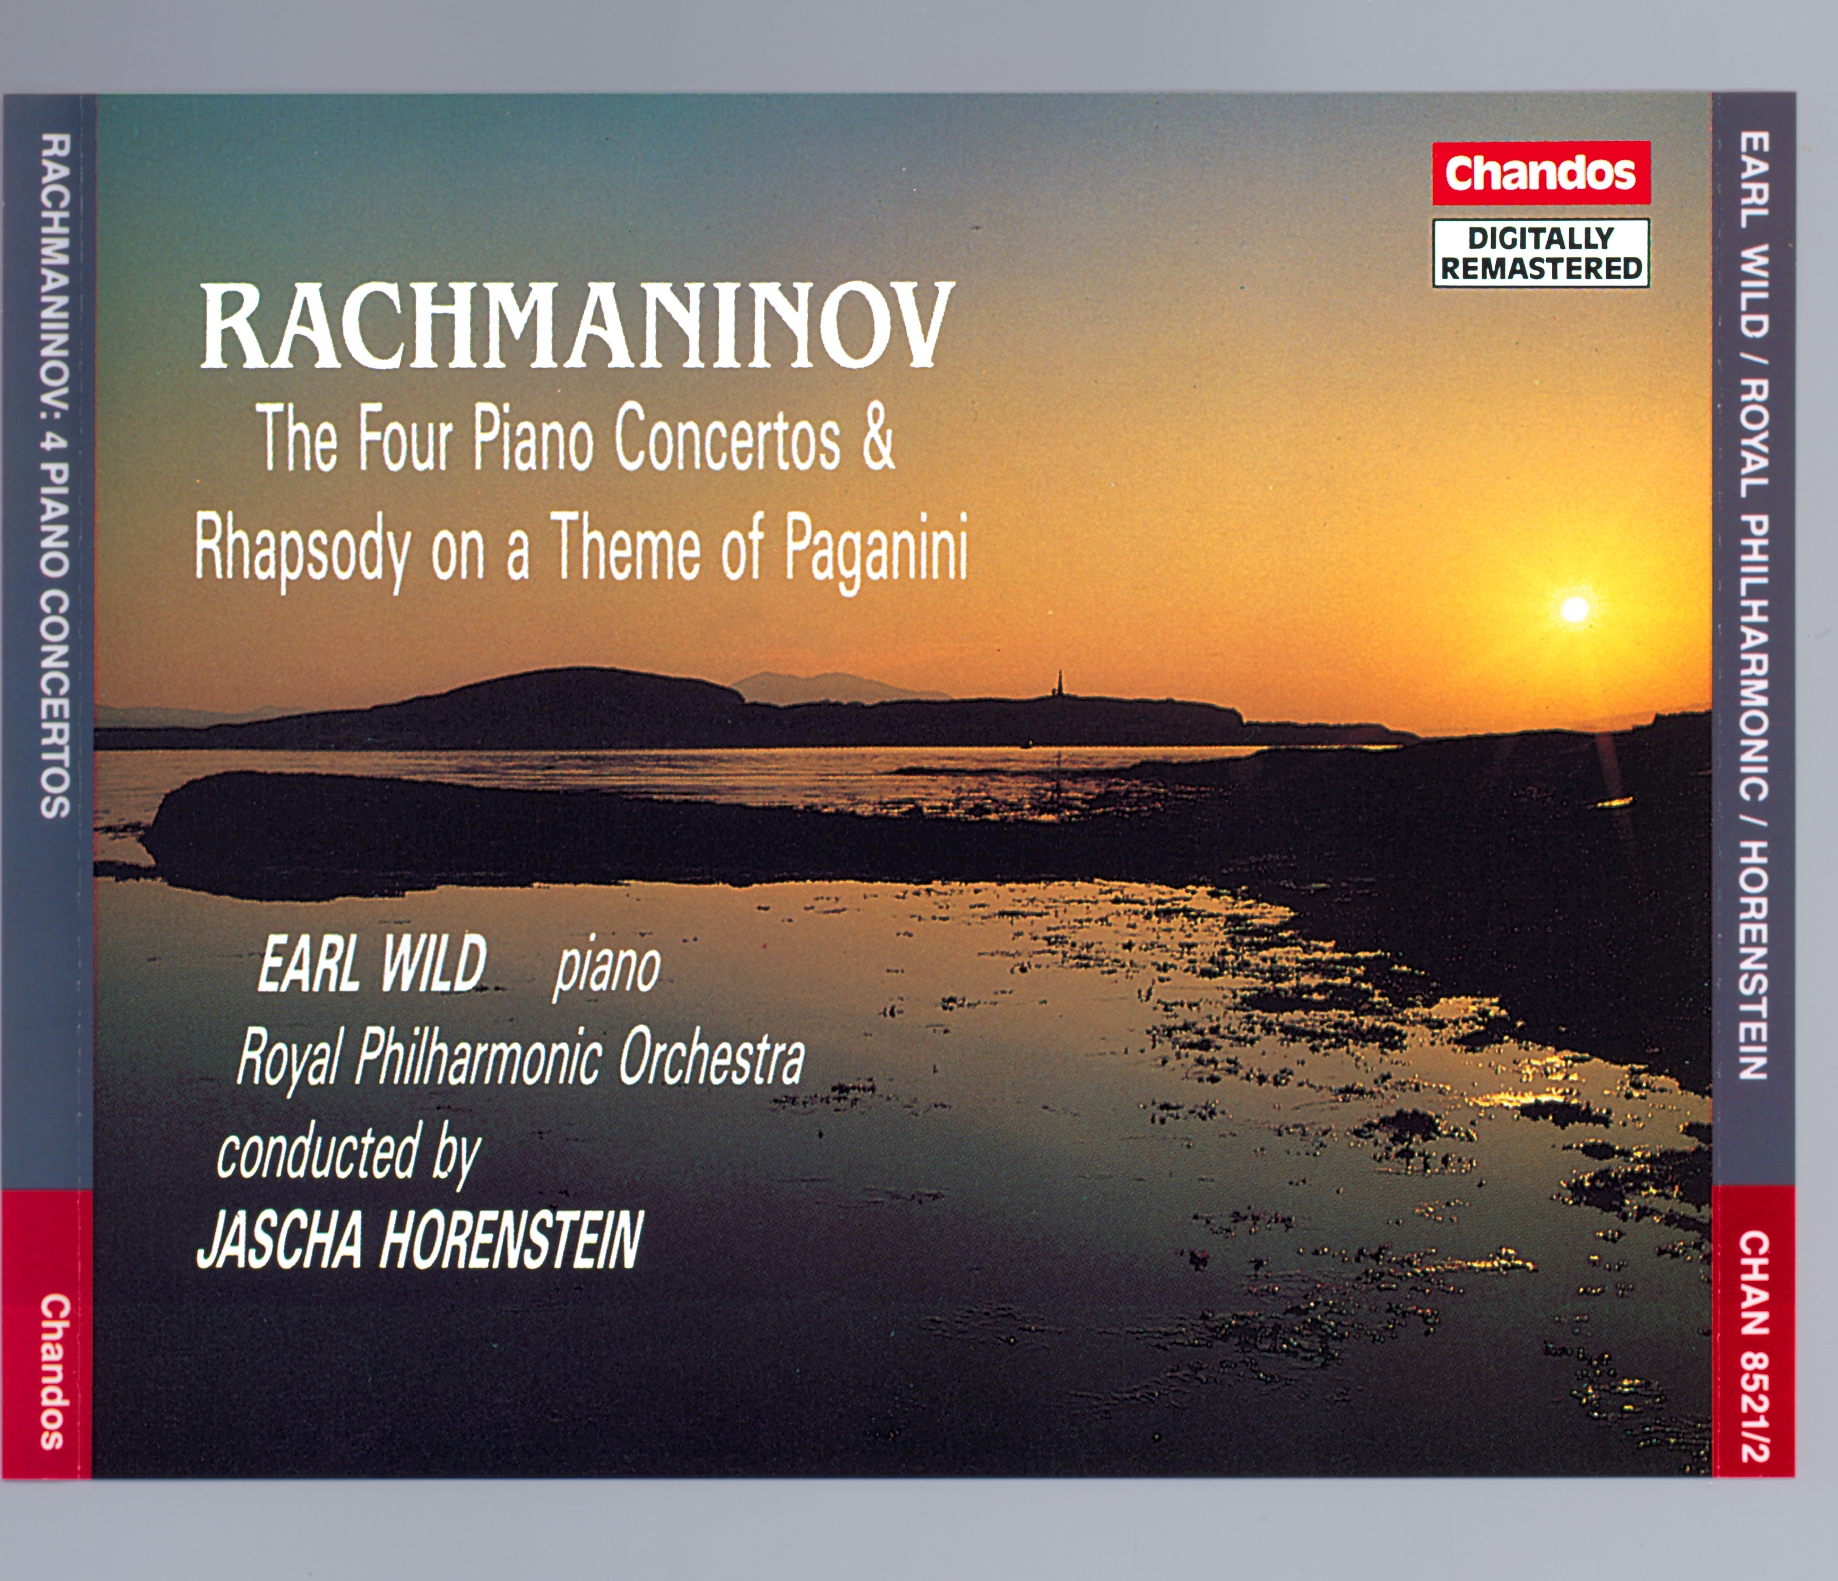 Rachmaninov - Earl Wild, Royal Philharmonic Orchestra, Jascha Horenstein The Four Piano Concertos & Rhapsody On A Theme Of Paganini